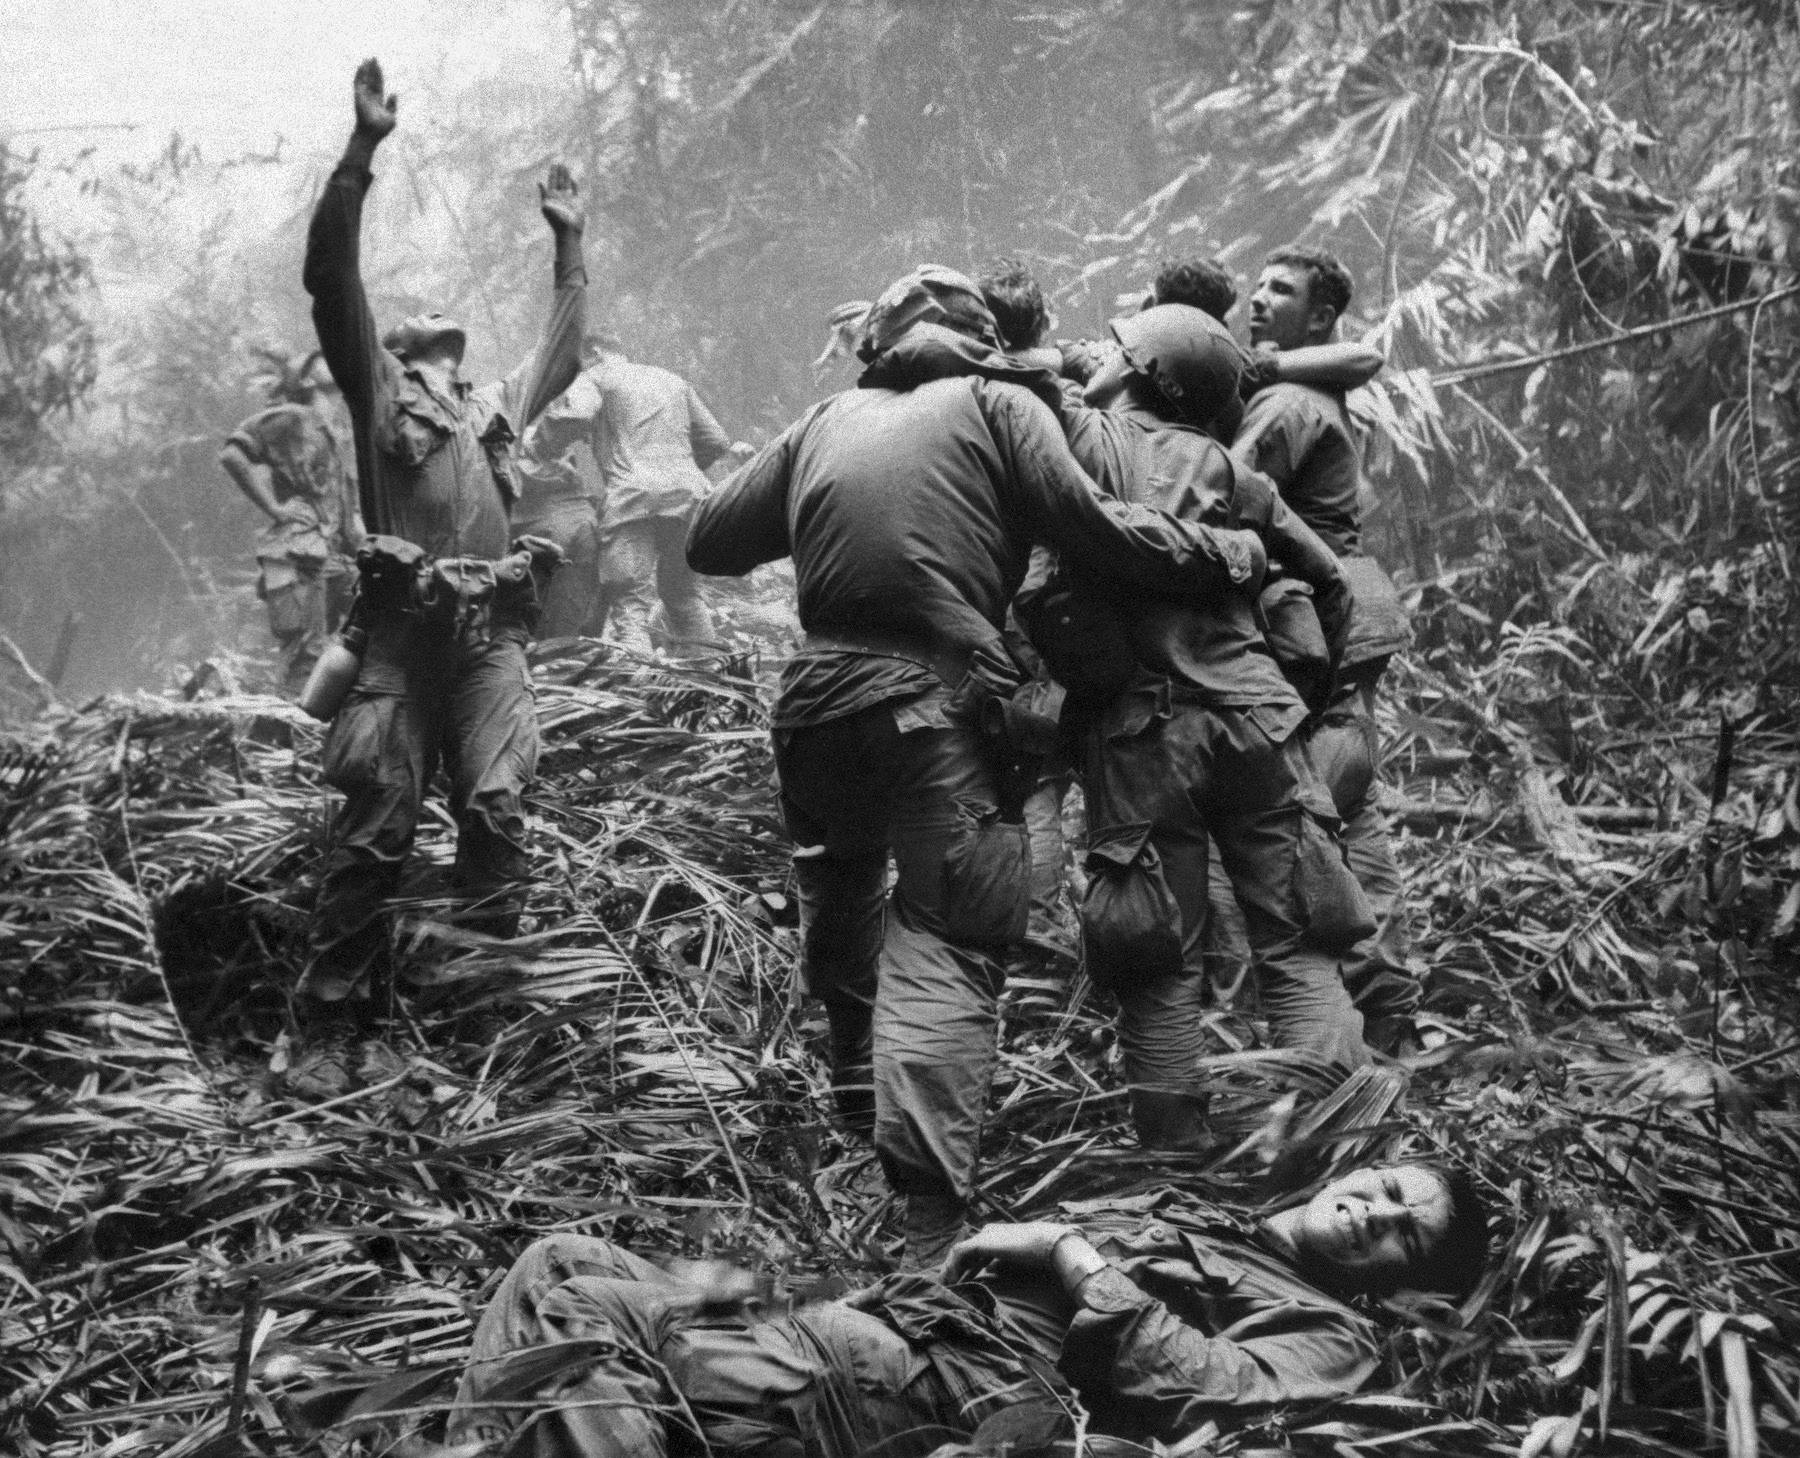 This iconic April 1968 file photo shows the first sergeant of A Company, 101st Airborne Division, guiding a medevac helicopter through the jungle foliage to pick up casualties suffered during a five-day patrol near Hue.